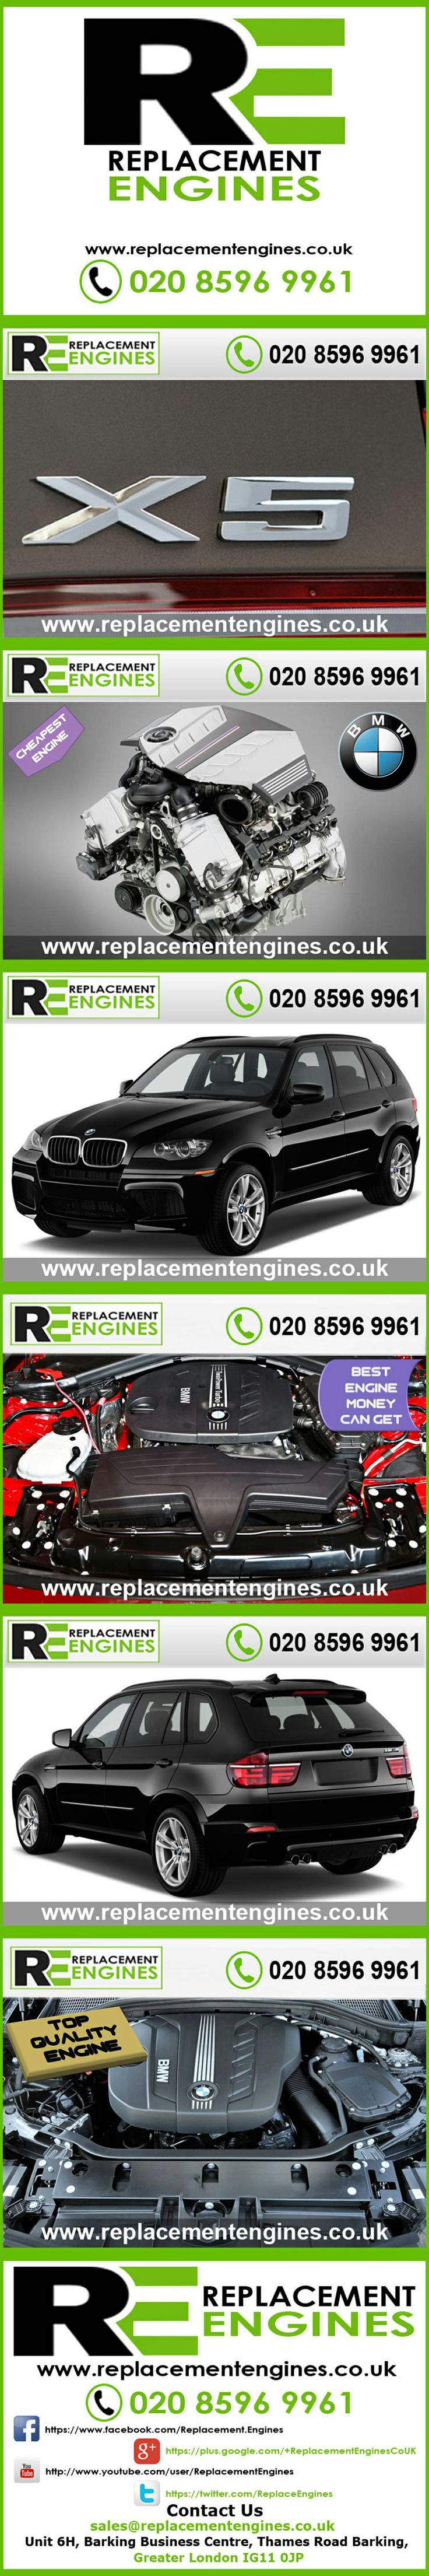 BMW X5 engines for sale at the cheapest prices, we have low mileage used & reconditioned engines in stock now, ready to be delivered to anywhere in the UK or overseas, visit Replacement Engines website here.